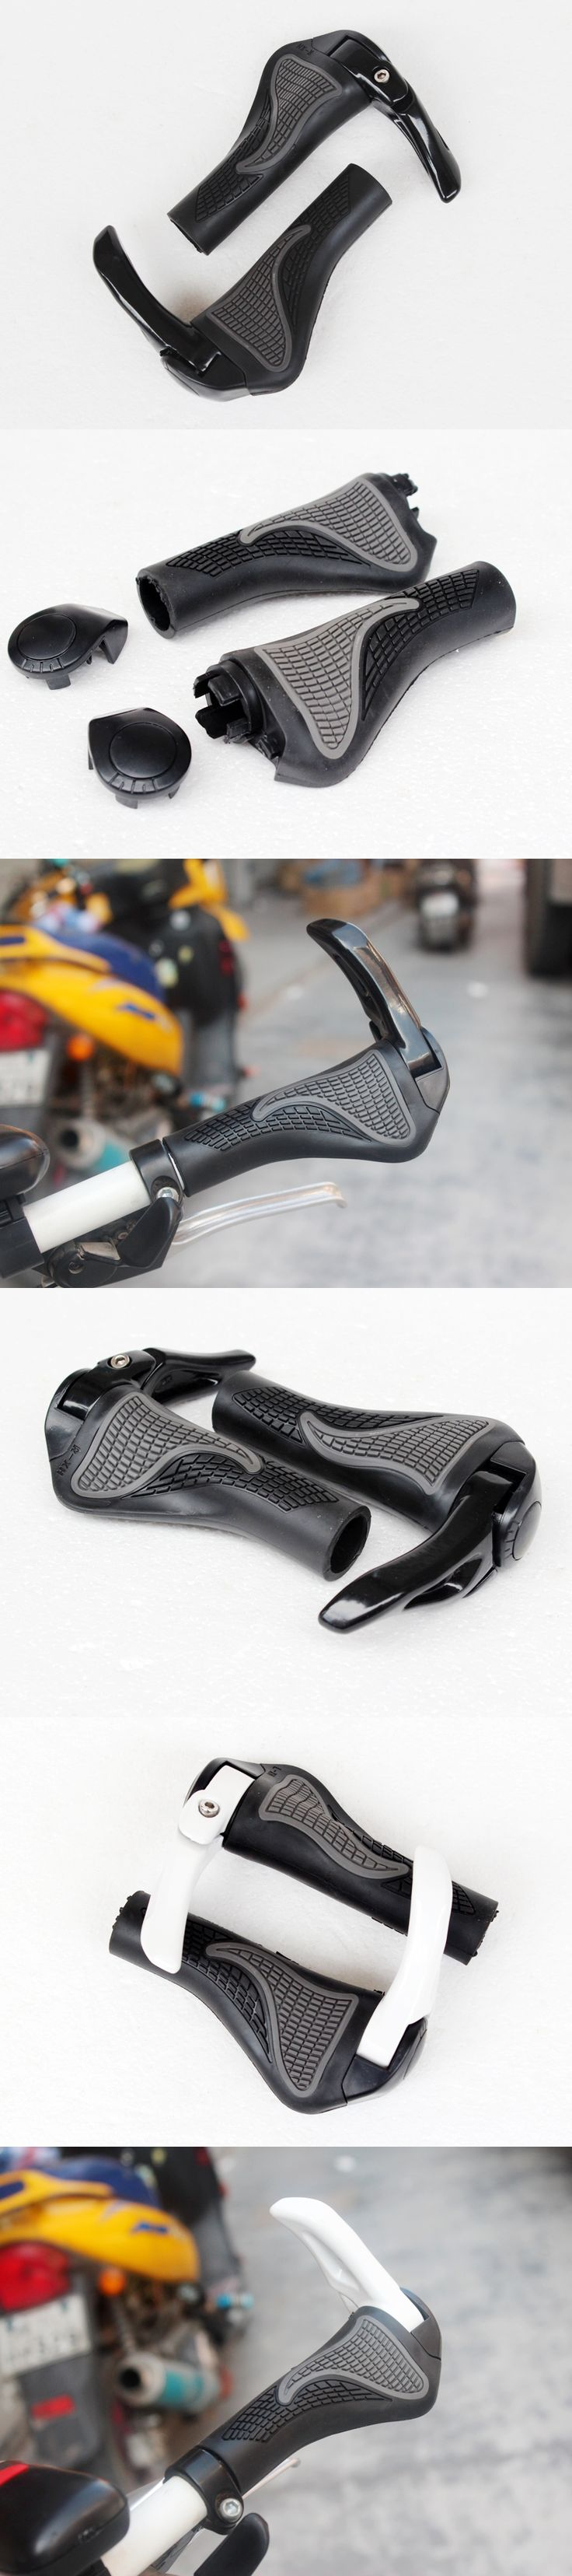 1 Pair Cycling MTB Mountain Road Bike Bicycle lock-on carbon Handlebar Cover Handle Grip Bar End Grips bicycle parts 2 Colors